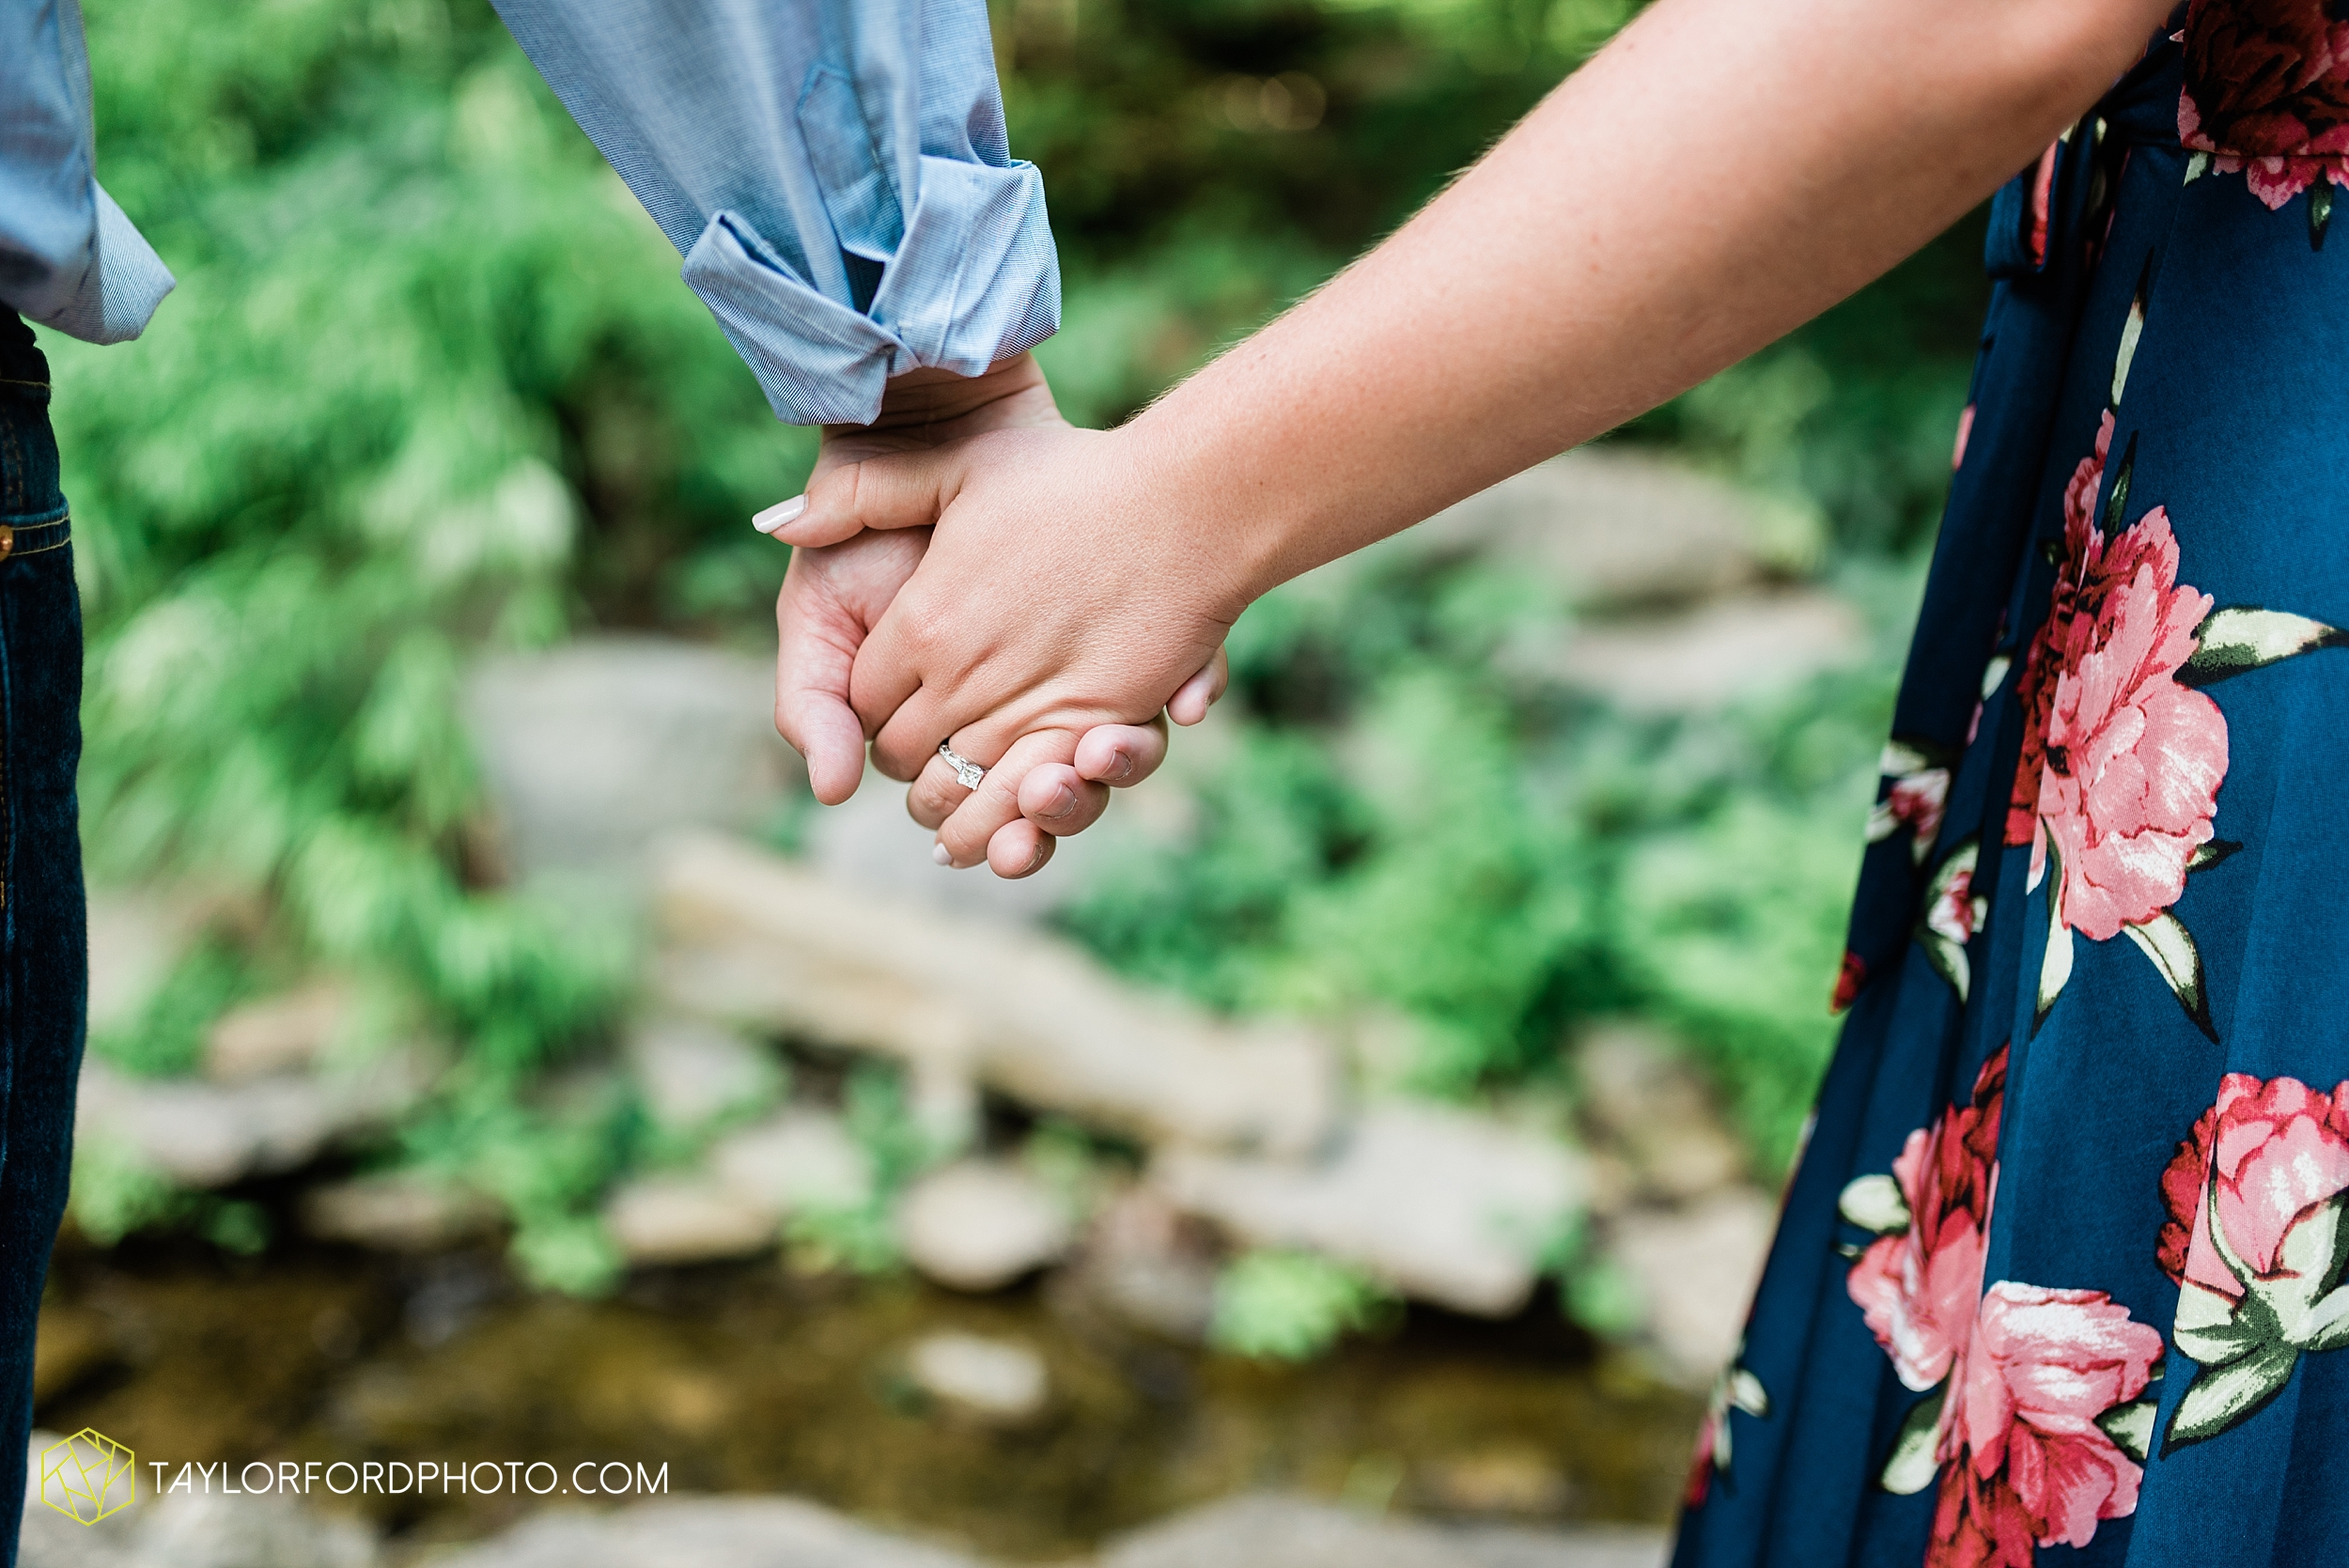 westerville-columbus-ohio-inniswood-metro-park-engagement-wedding-fourth-friday-photographer-Taylor-Ford-Photography_8766.jpg